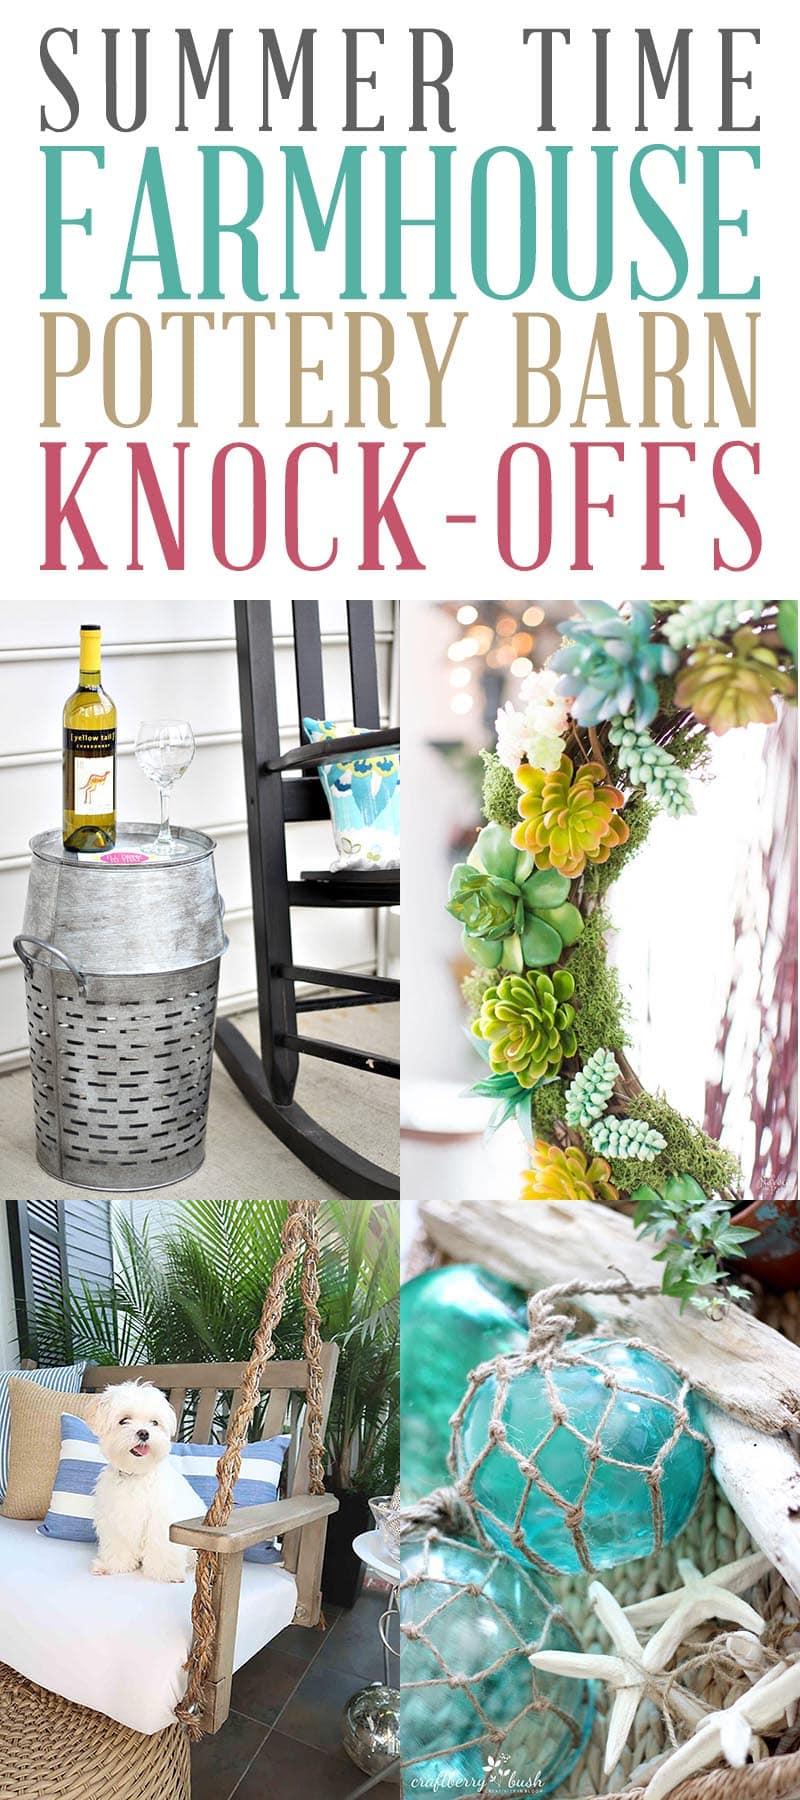 These Summer Farmhouse Pottery Barn Knock-Offs are sure to bring a gentle breeze of Summer Time freshness to your Home Decor